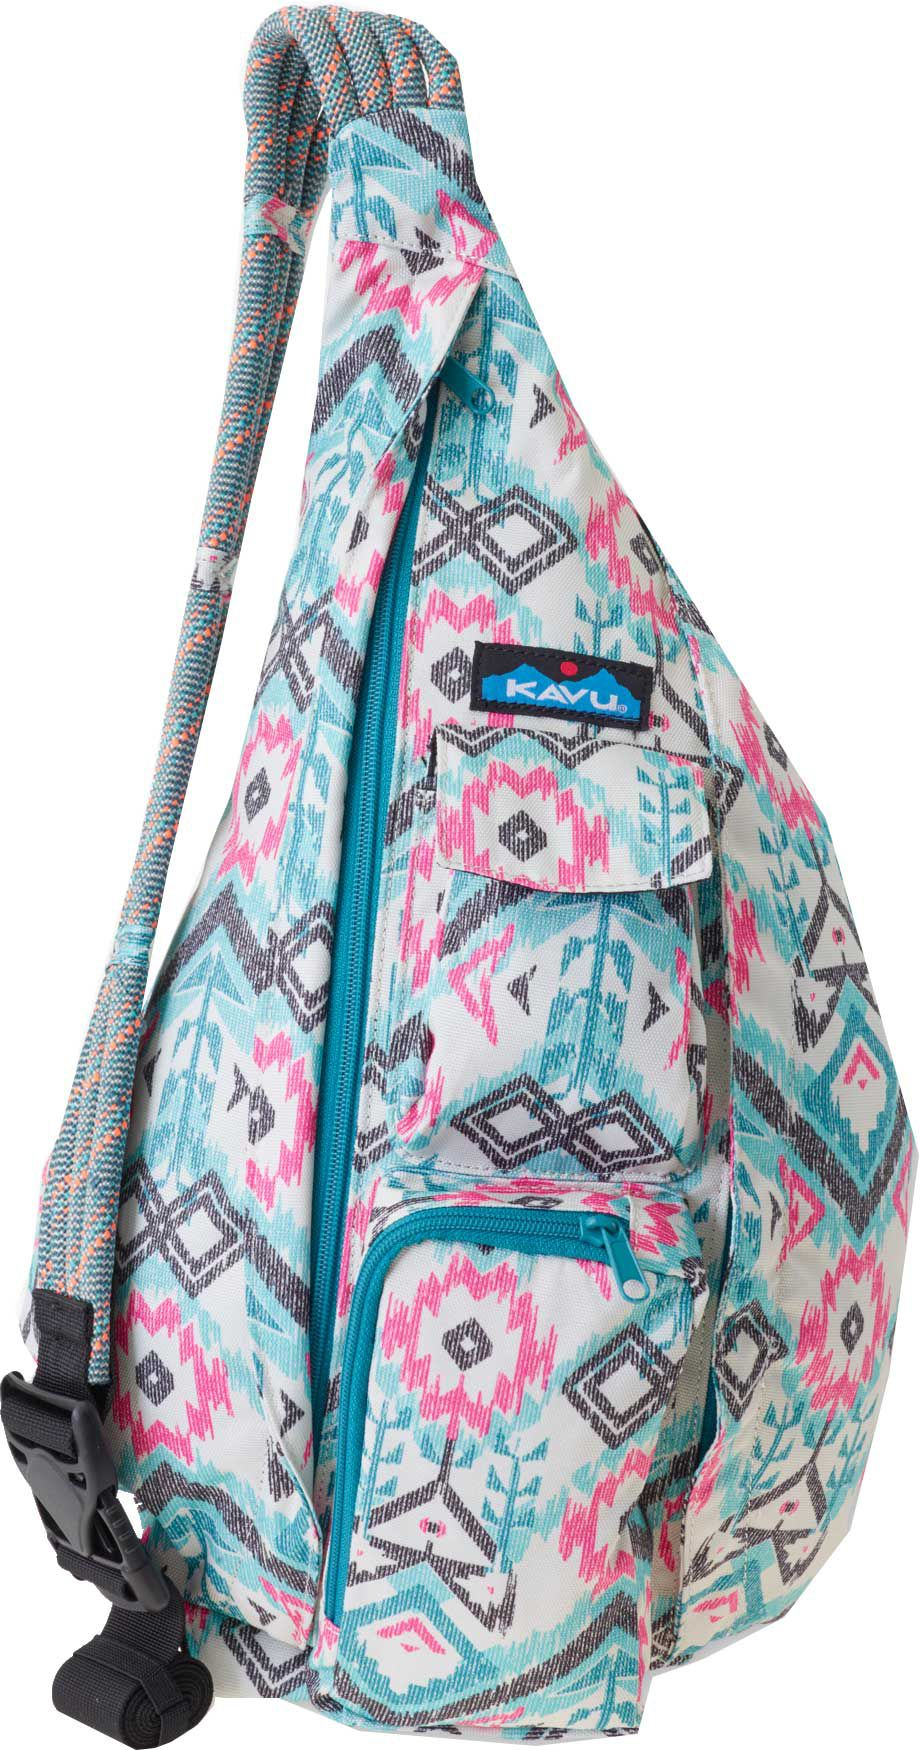 KAVU Rope Sling Bag| DICK'S Sporting Goods